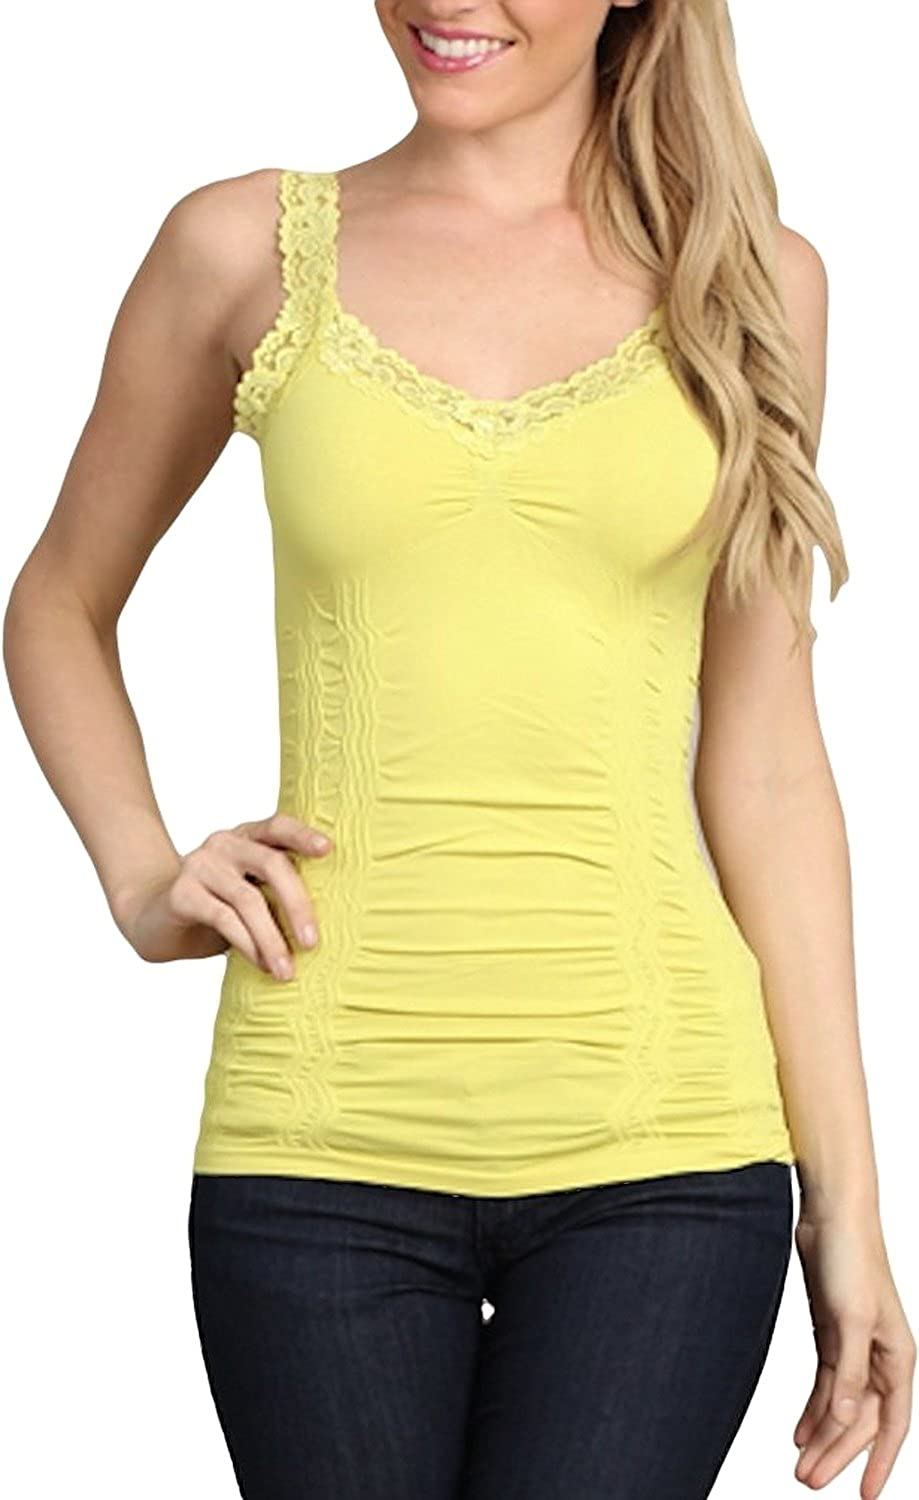 M.Rena Women's Lace Camisole-one Size Fits Most- Sharp Green